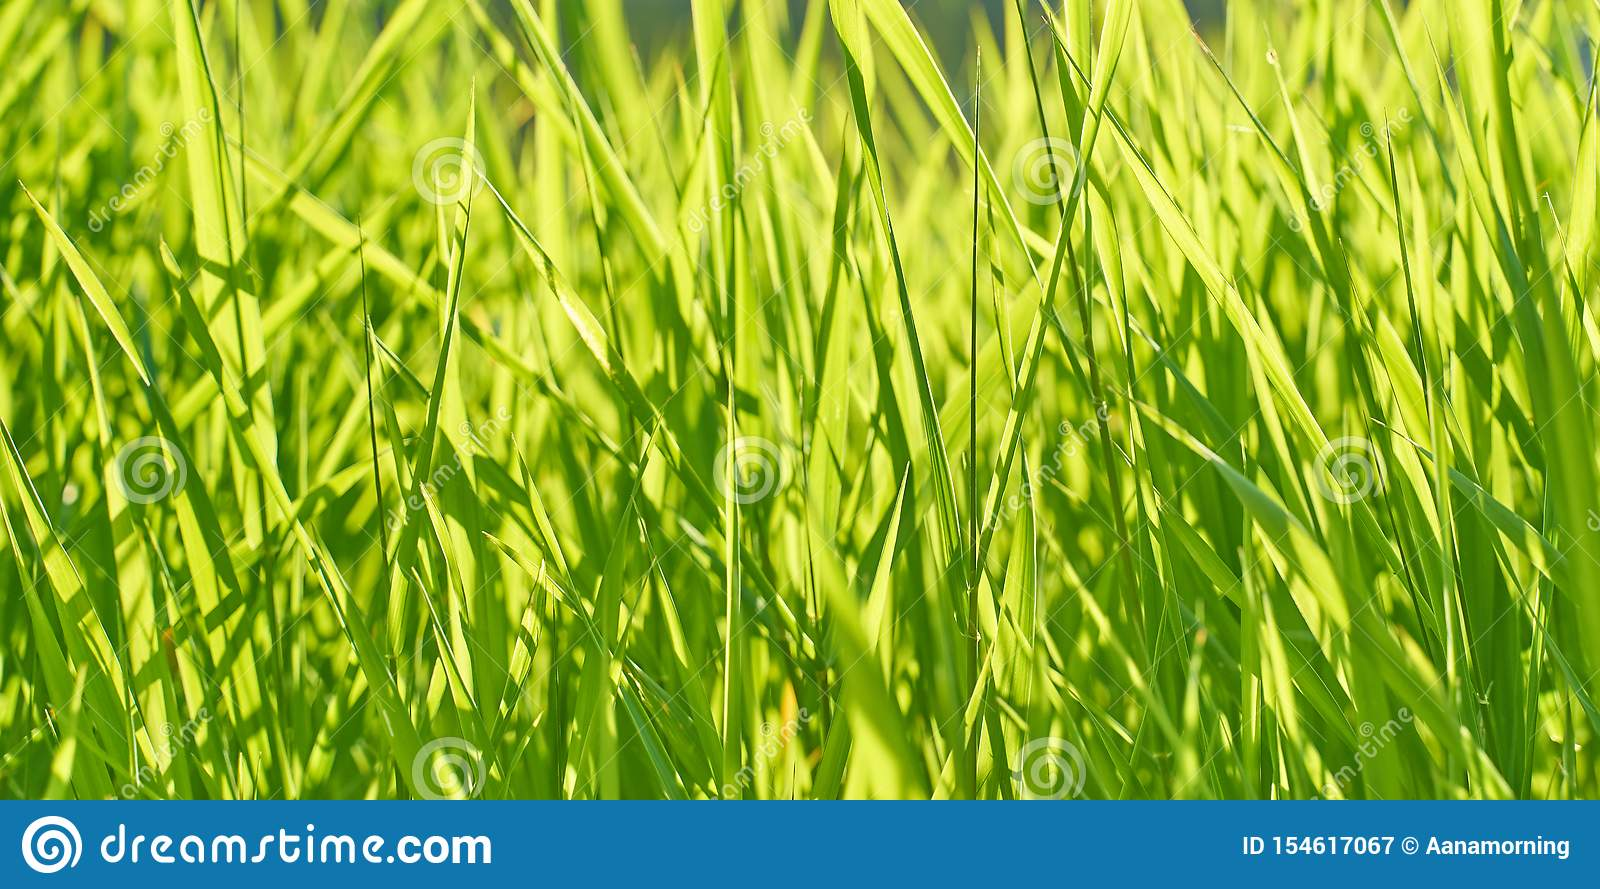 Background with lush bright green grass on a sunny summer day